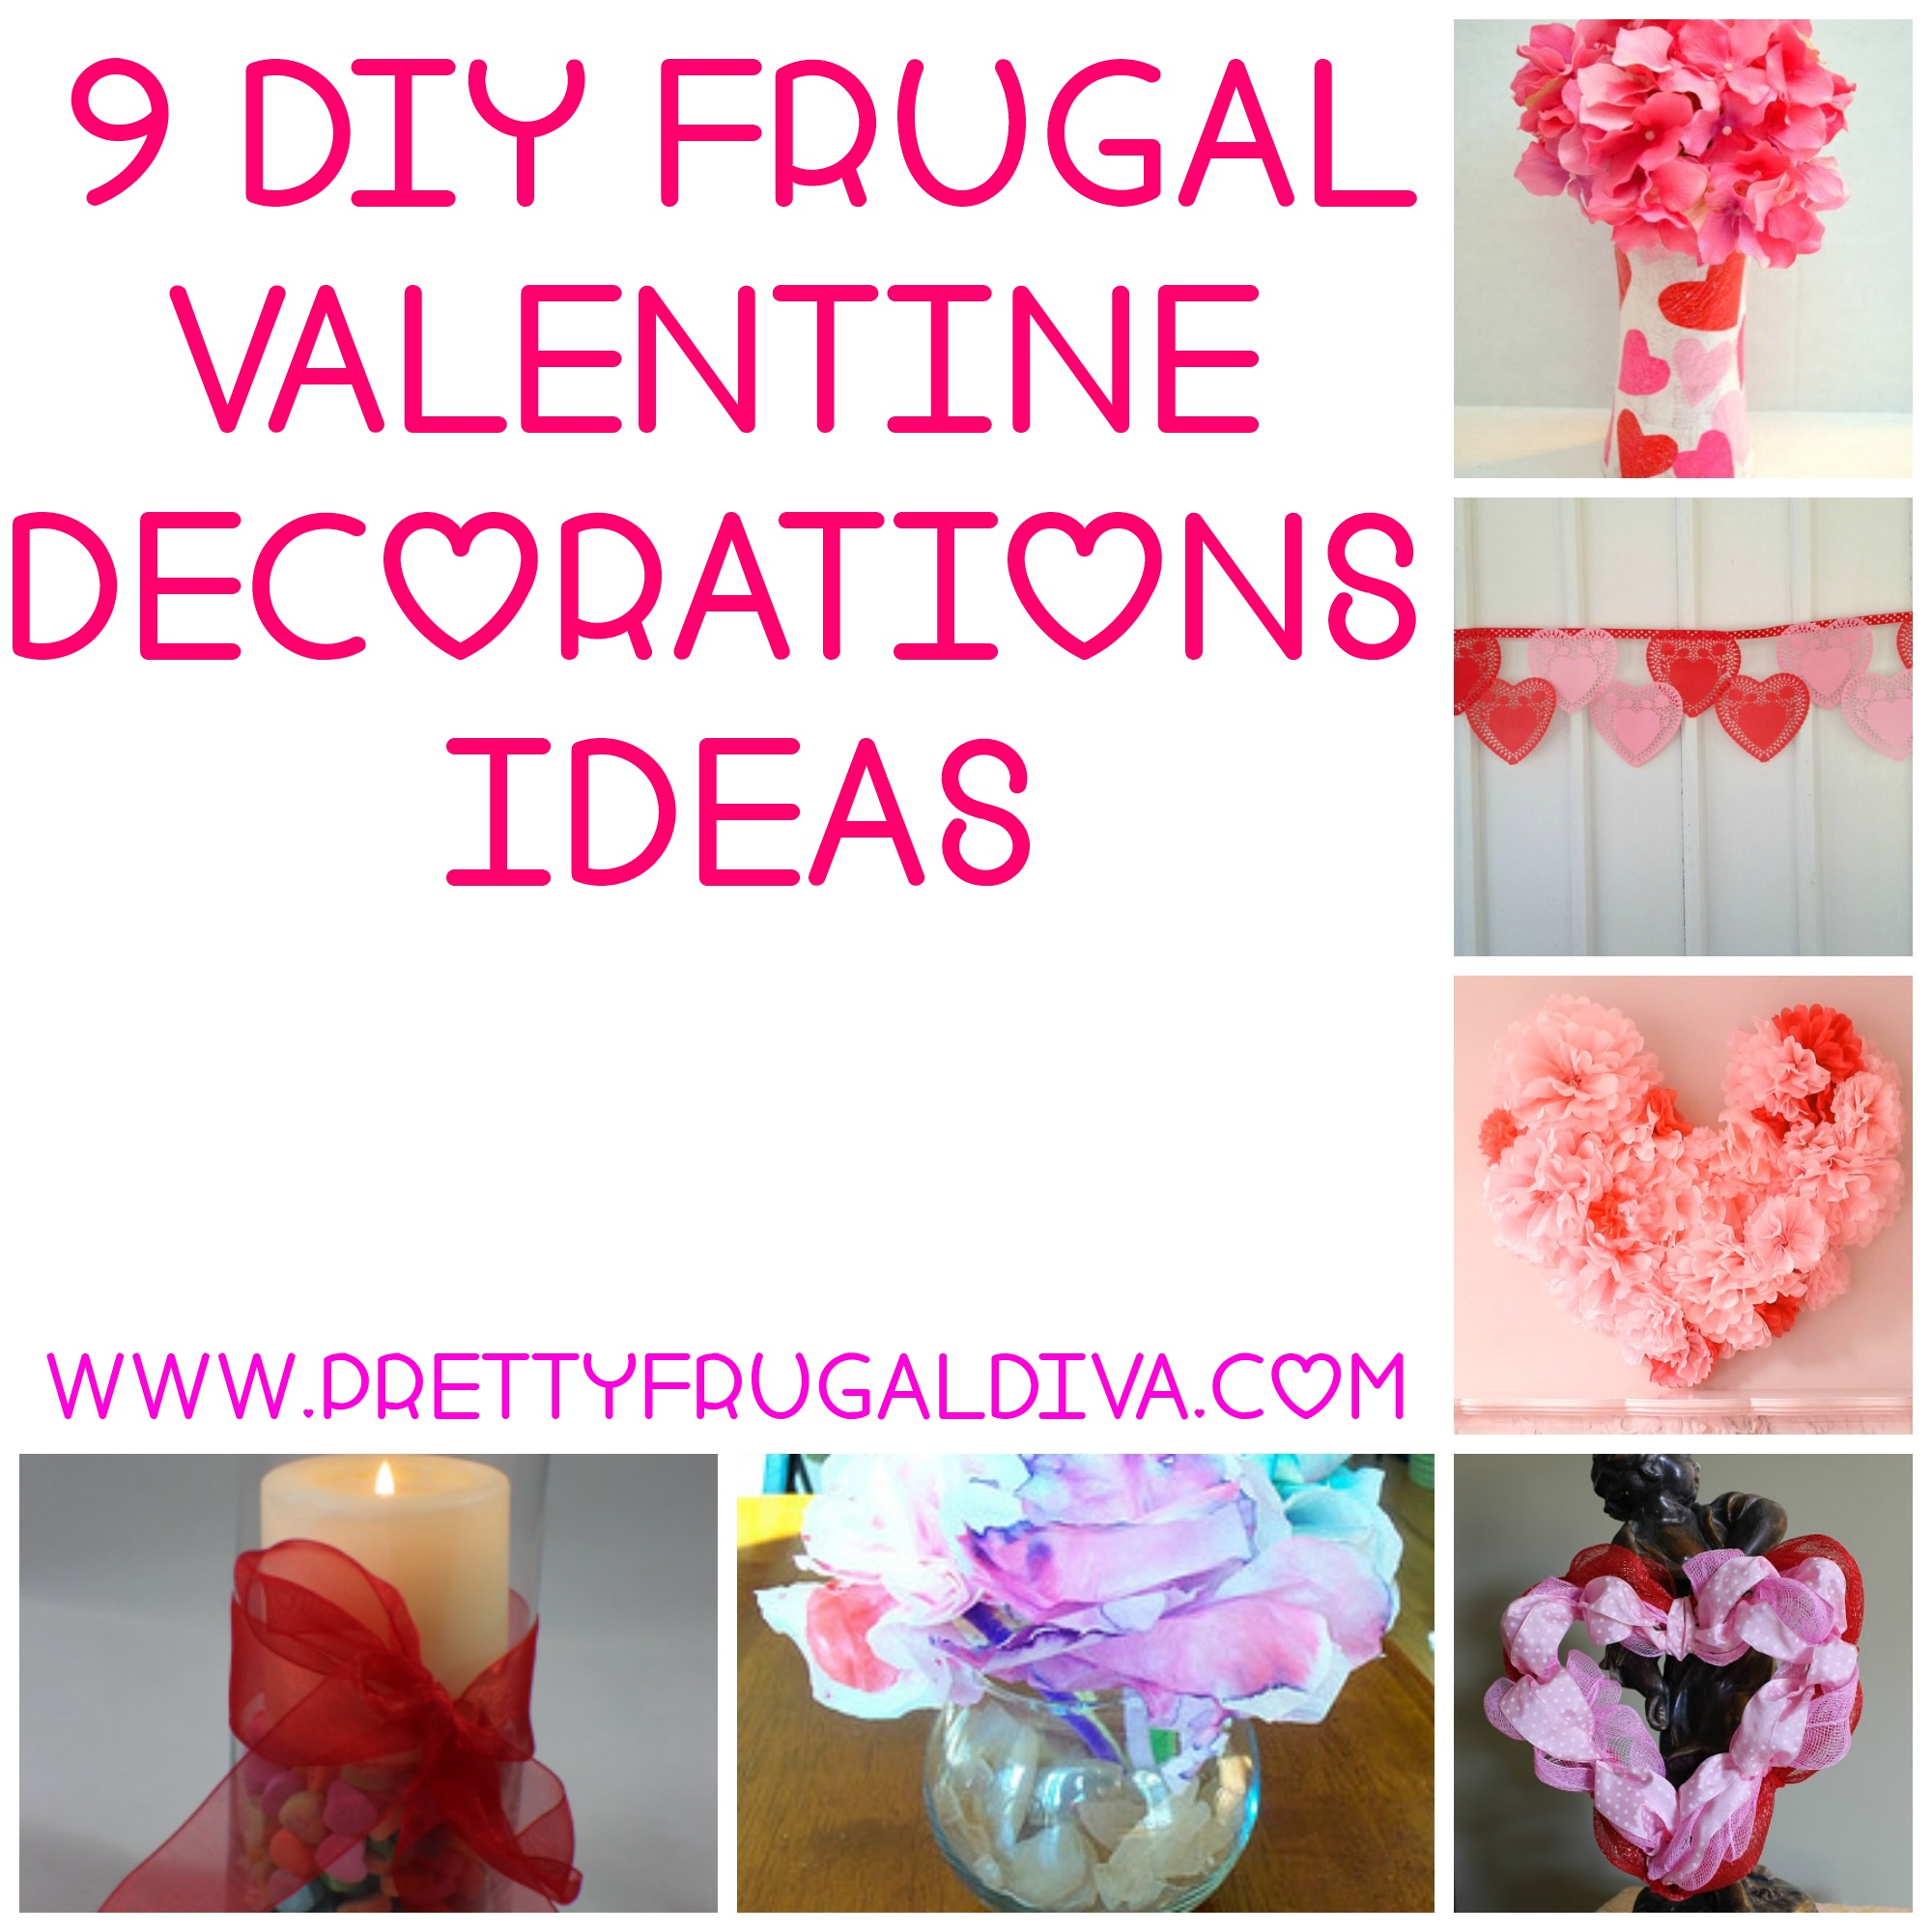 9 diy frugal valentine decor ideas pretty frugal diva for Home decorations for valentine s day